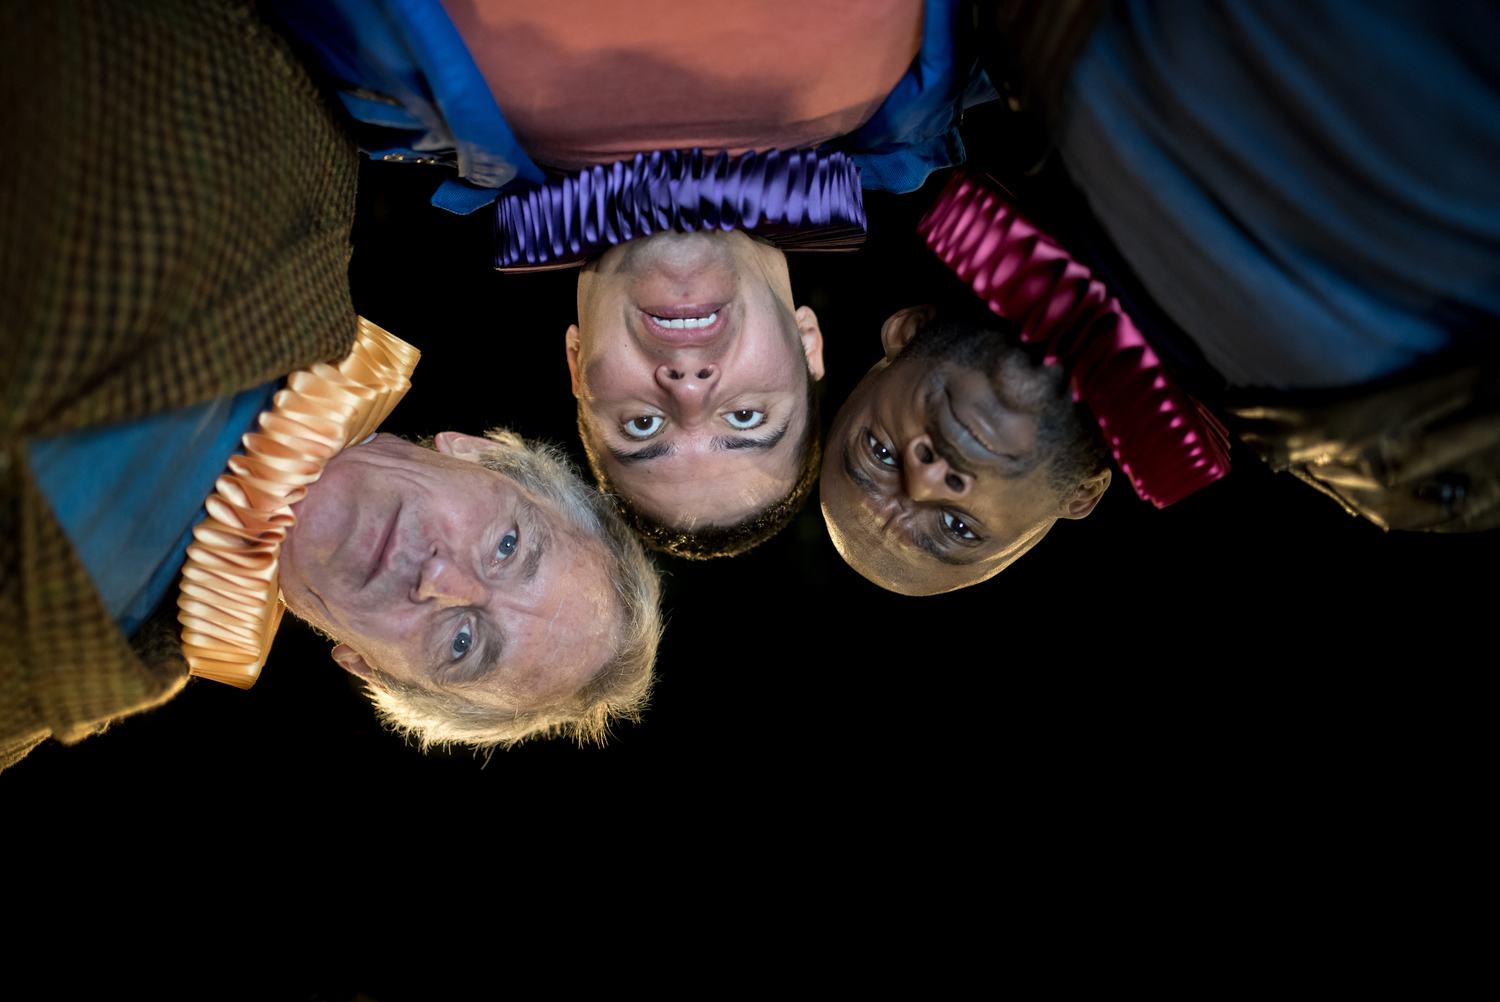 BWW Review: THE COMPLETE WORKS OF WILLIAM SHAKESPEARE (ABRIDGED) [REVISED] at Human Race Theatre Company